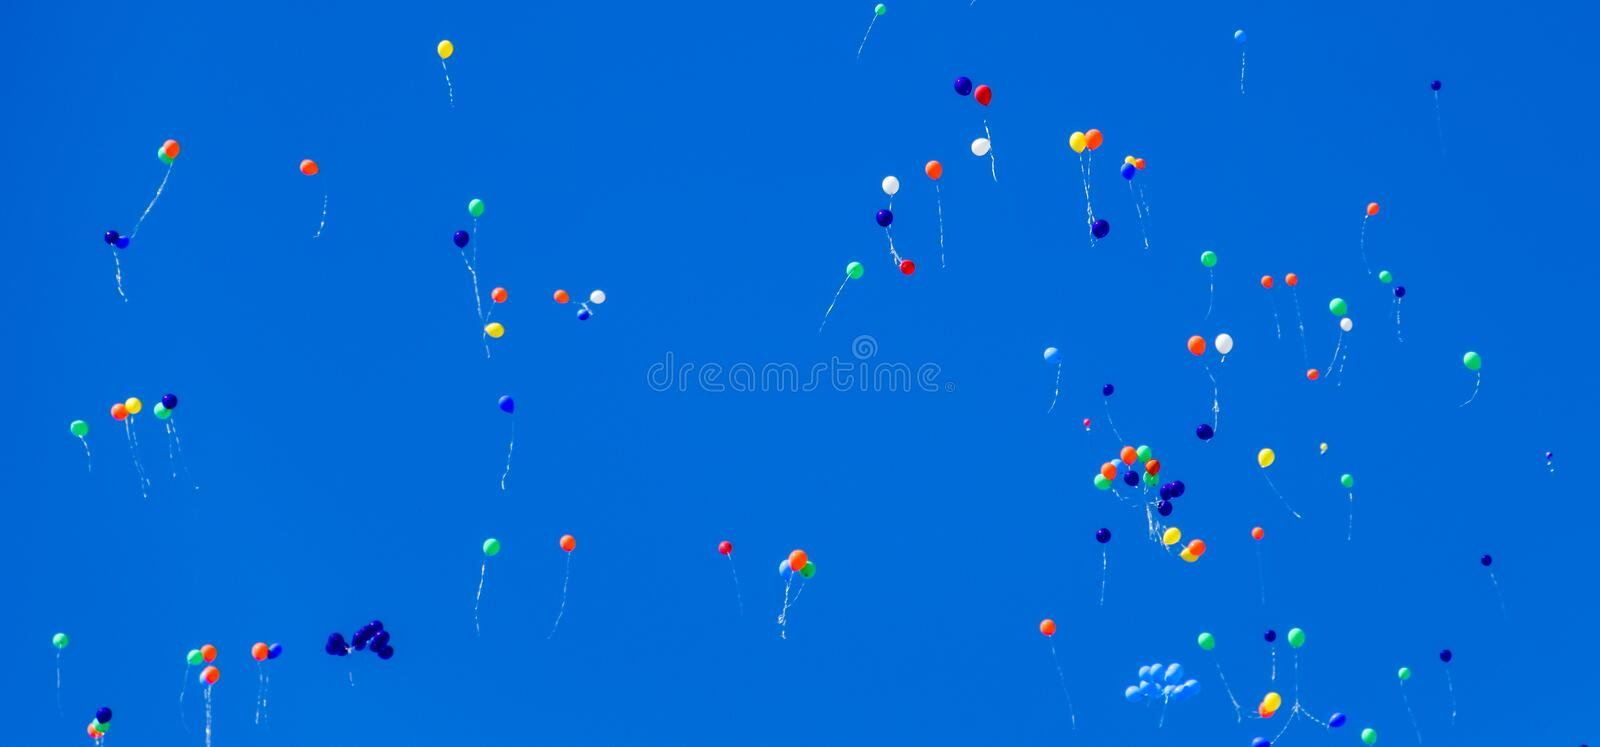 Multicolored balls, filled with helium, fly in the blue sky.  stock image